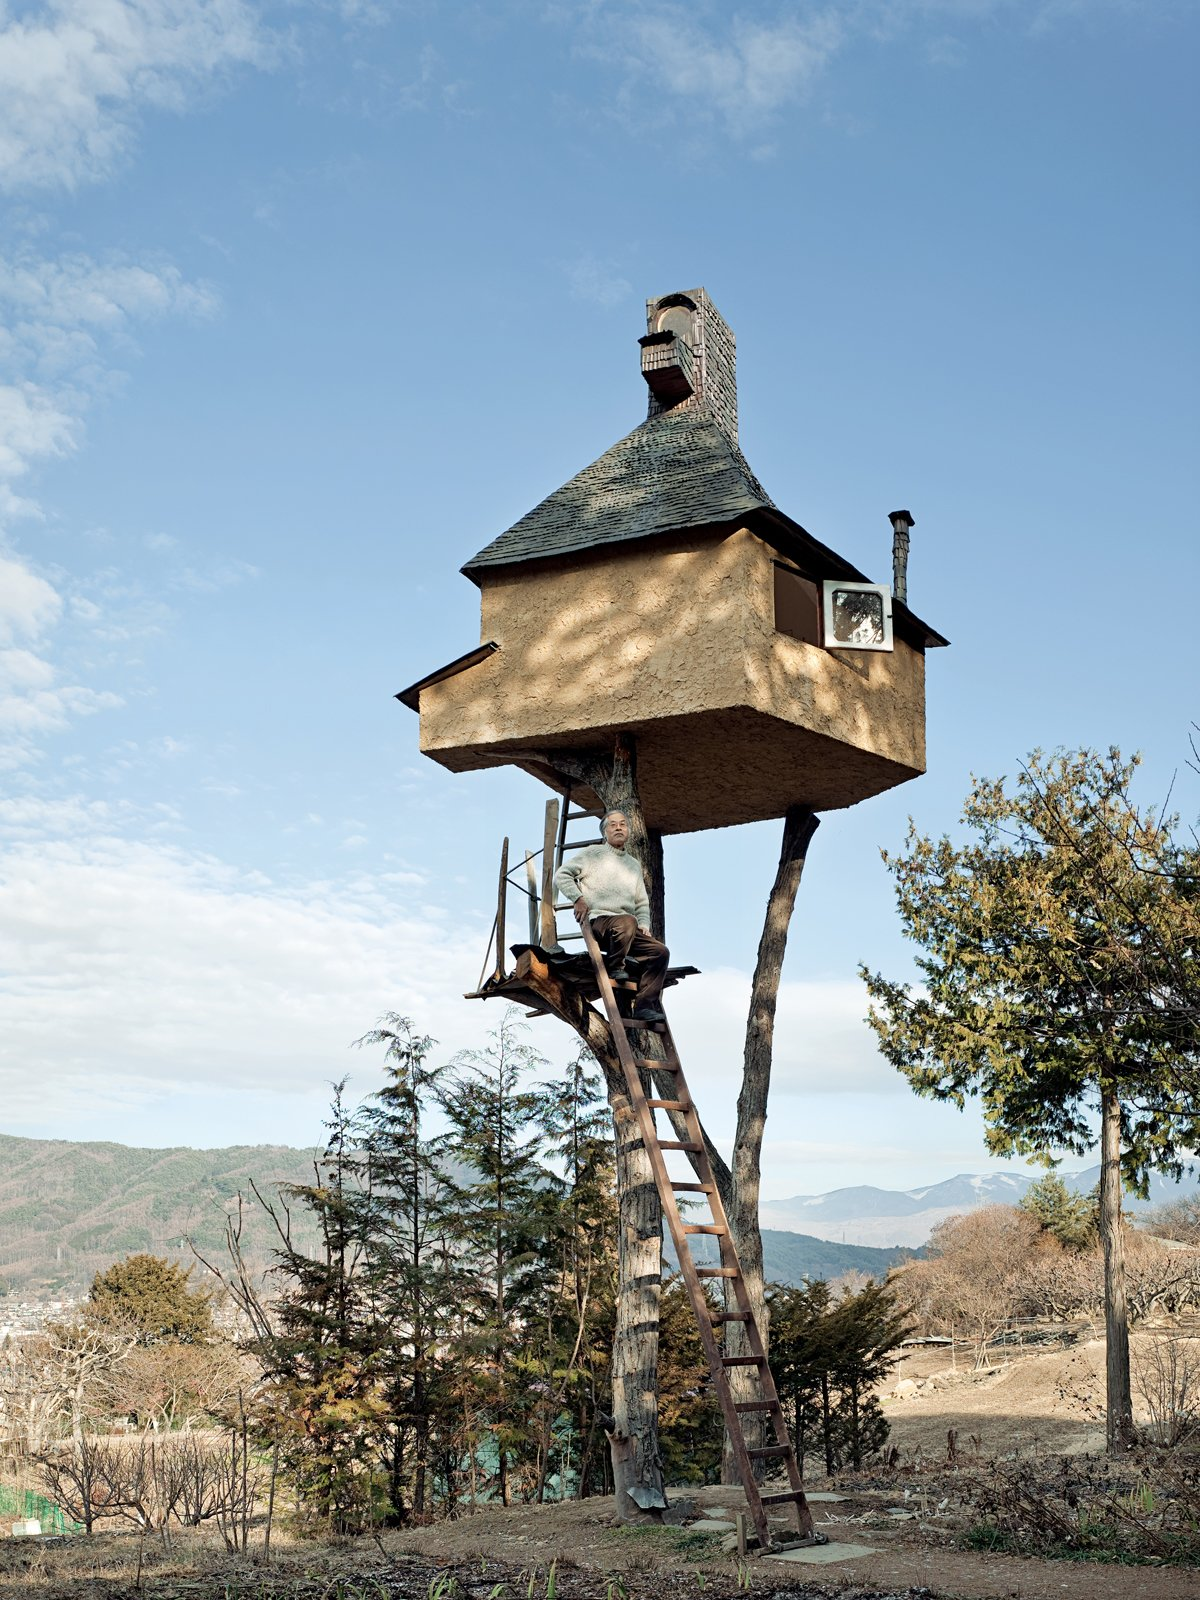 "Fujimori's retreat in Nagano, The Too-High Tea House, which is adorned with a roof of hand-rolled copper sheets, seems precariously perched atop a pair of tree trunks 20 feet in the sky. Why two? ""One leg is dangerous and three legs are too stable and boring.""  Modern Treehouses by Aileen Kwun from Terunobu Fujimori"